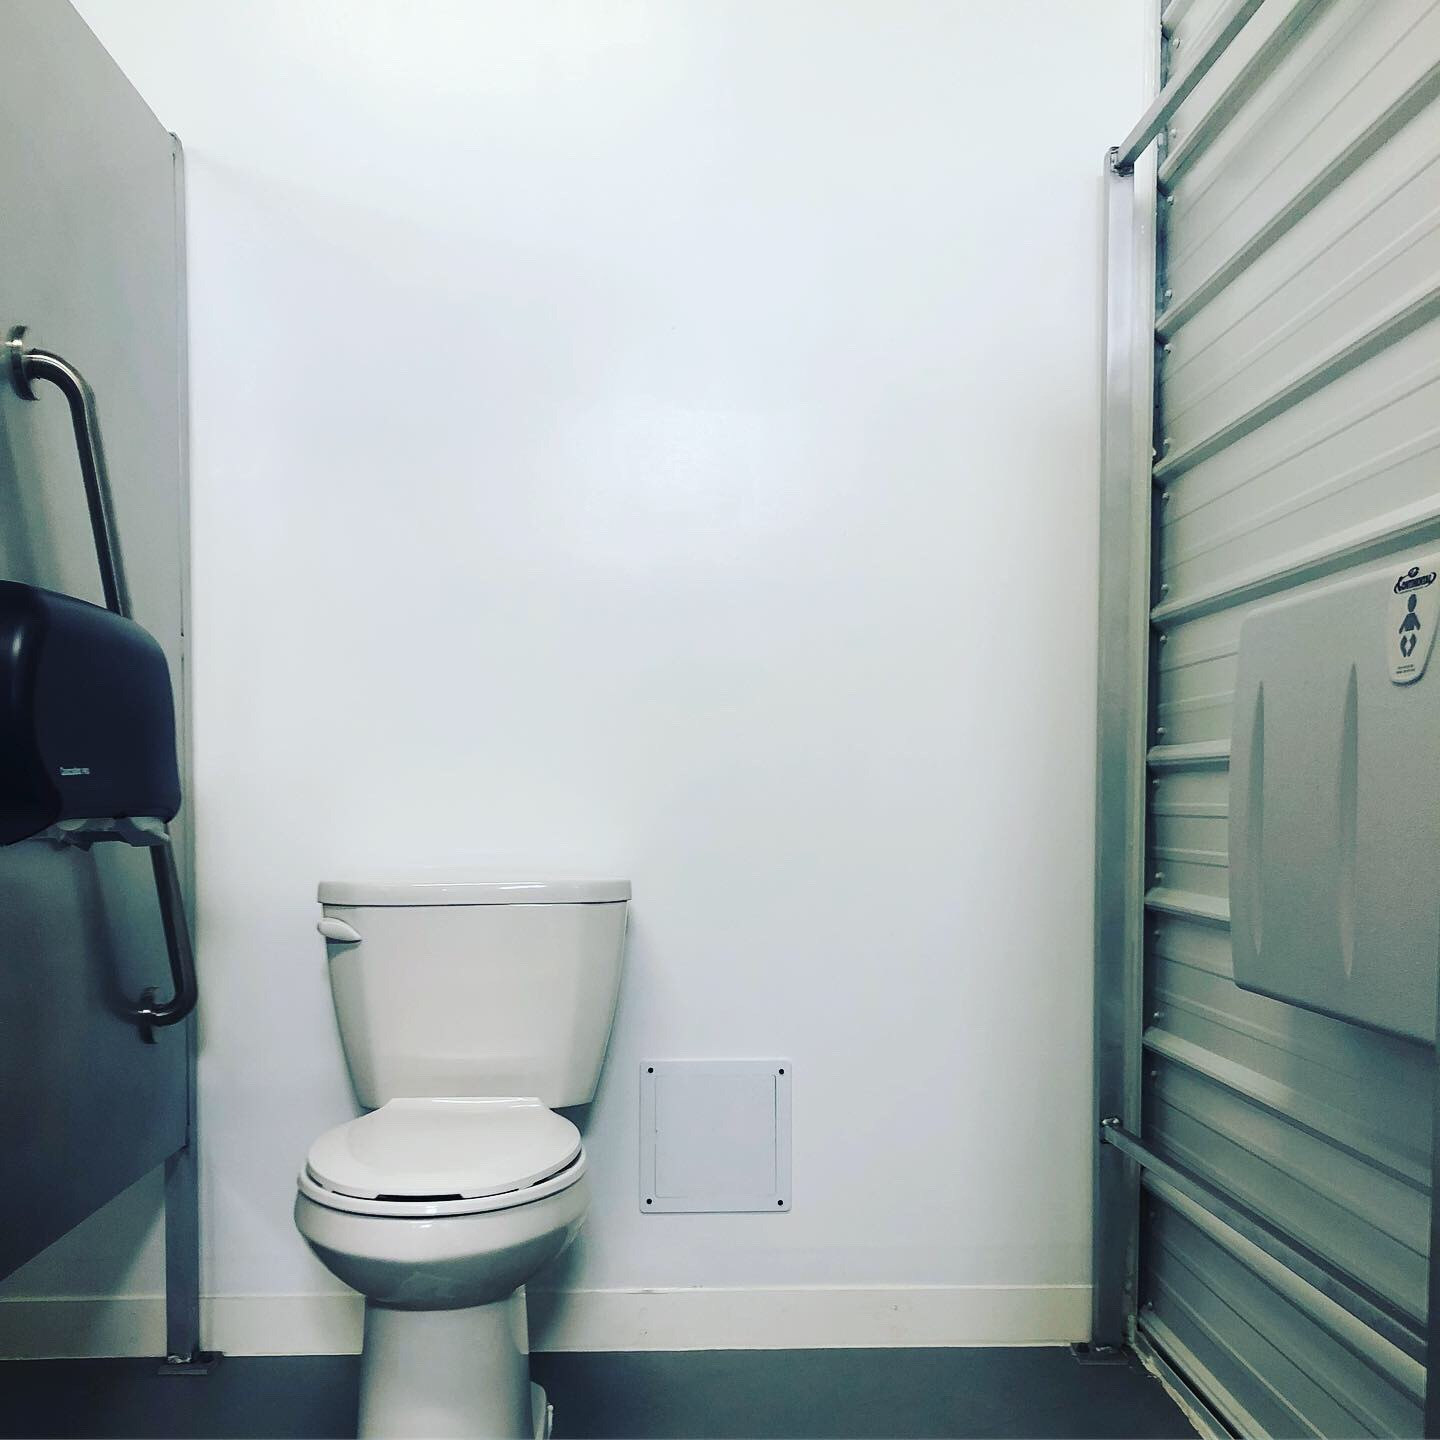 Accessible washroom stall